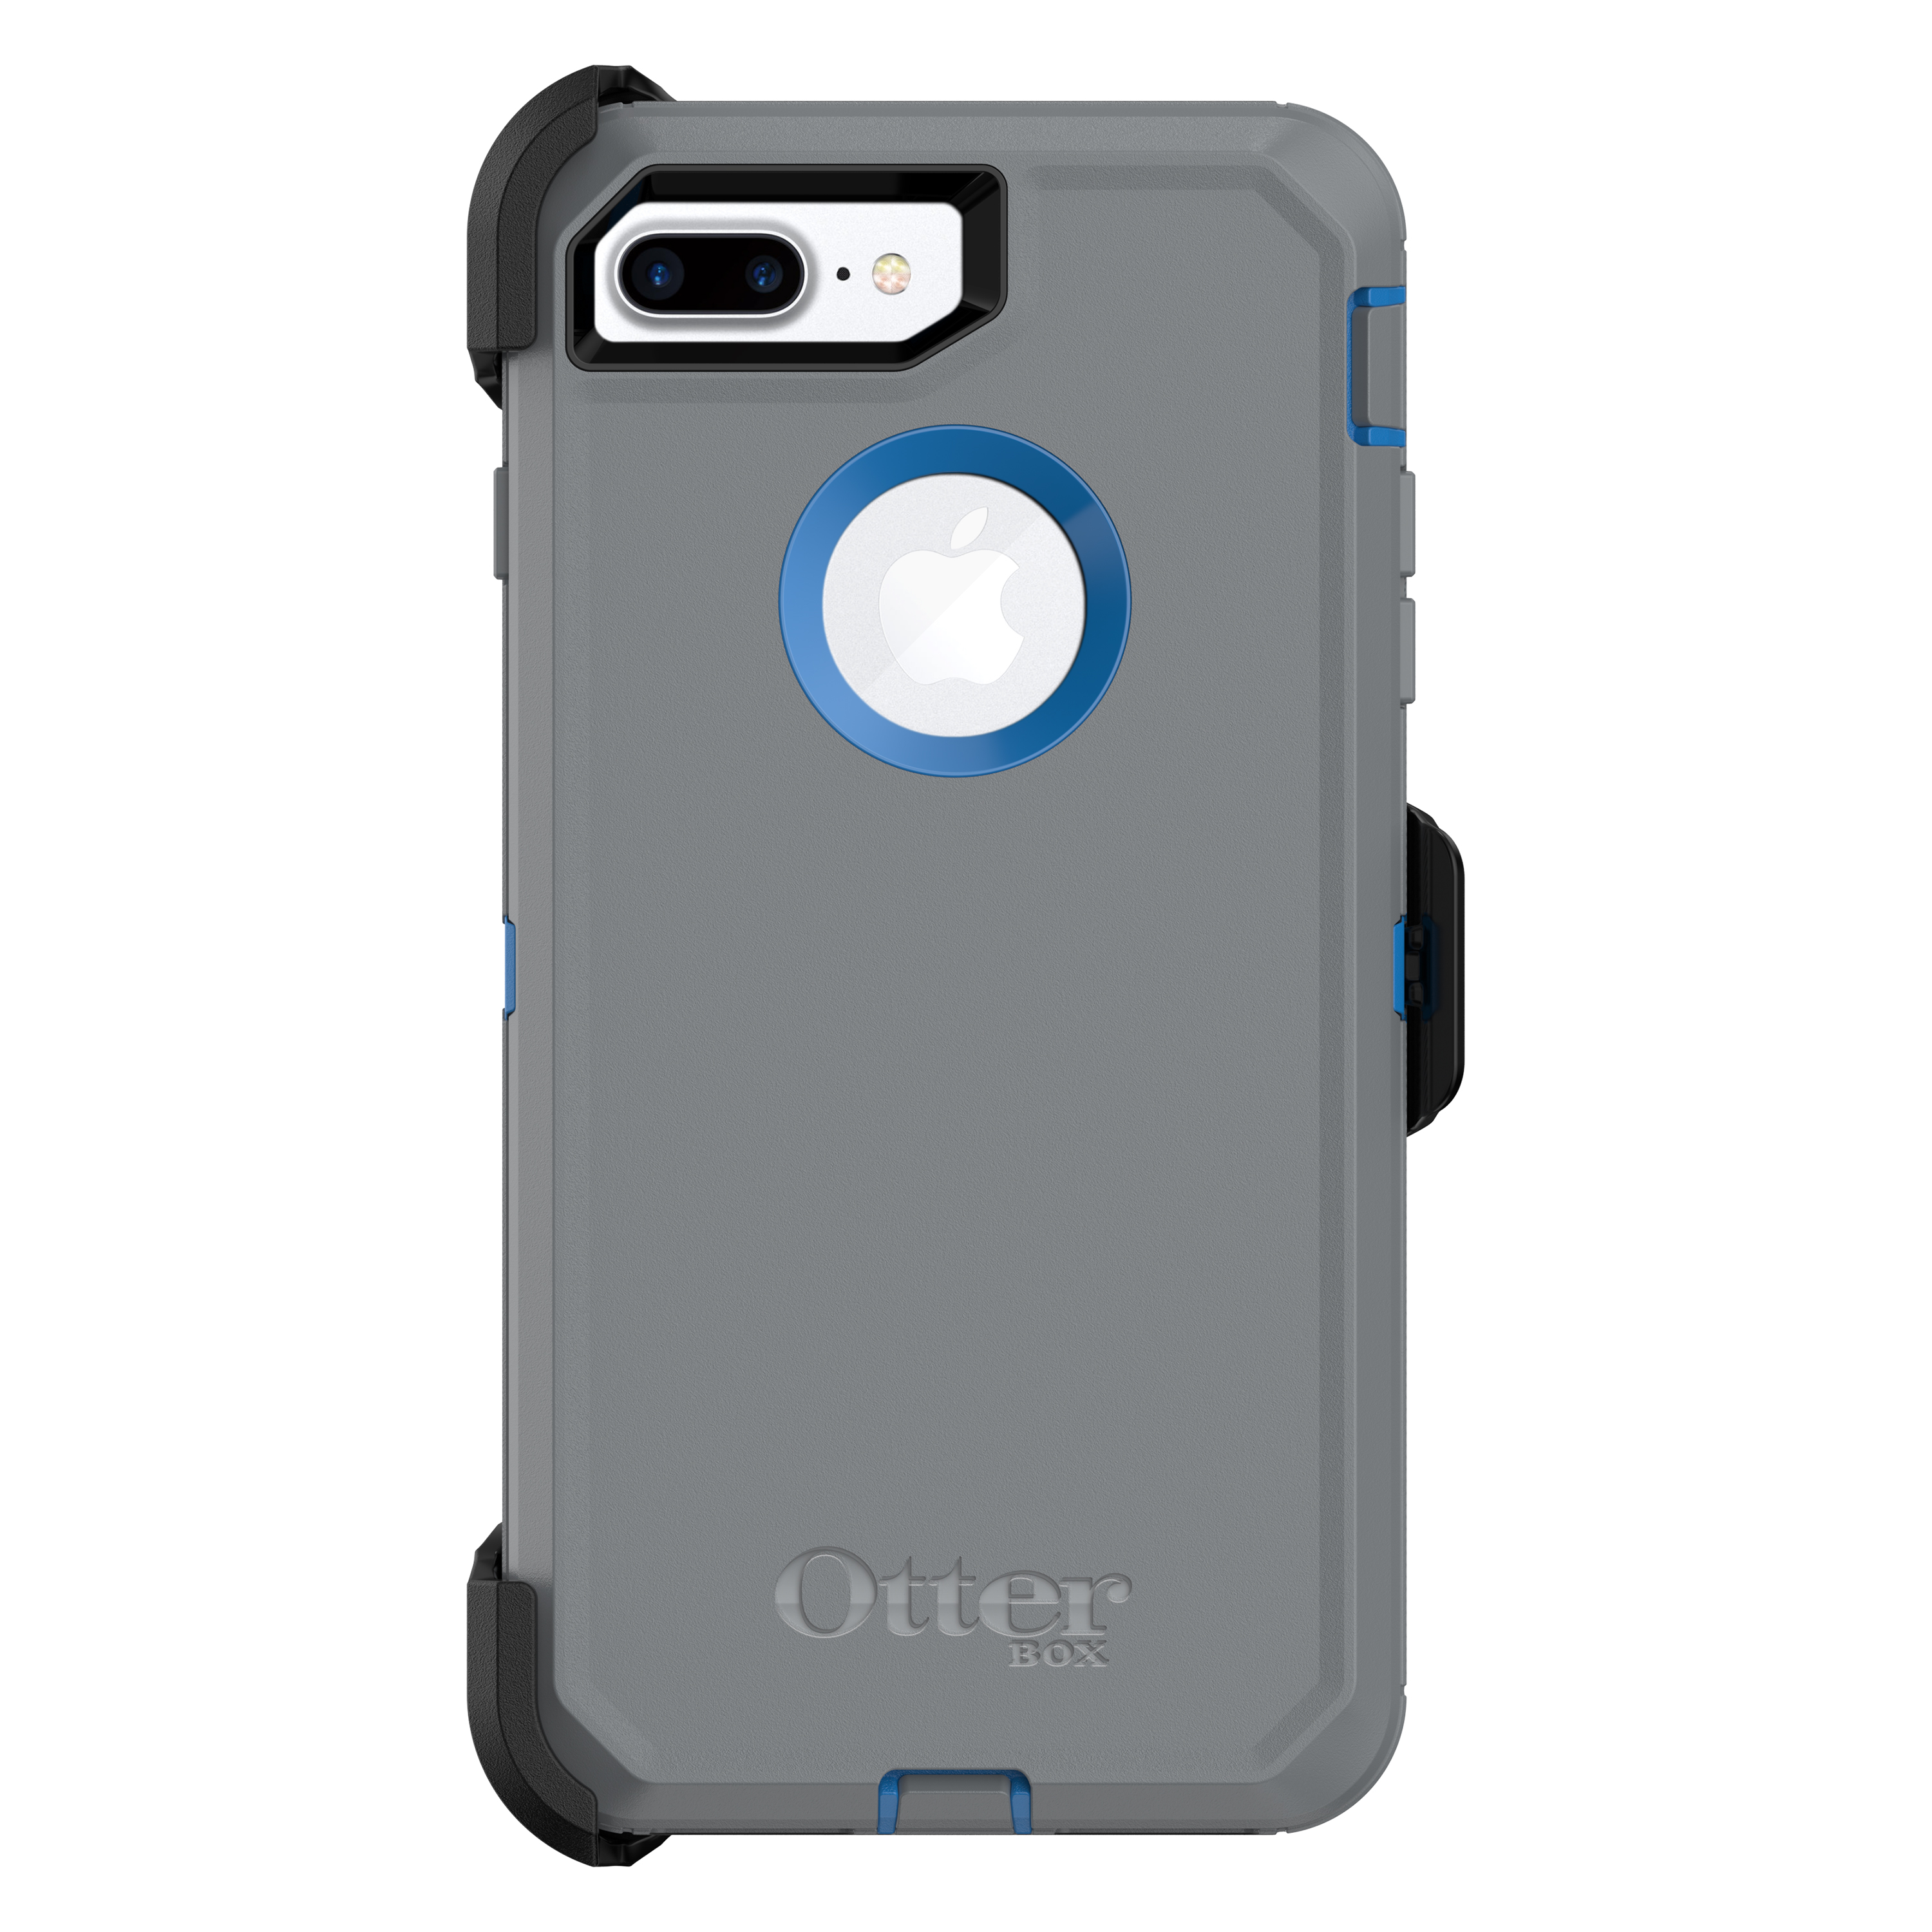 new concept 46dd7 67950 OtterBox Defender Series Case for iPhone 8 Plus & iPhone 7 Plus ...